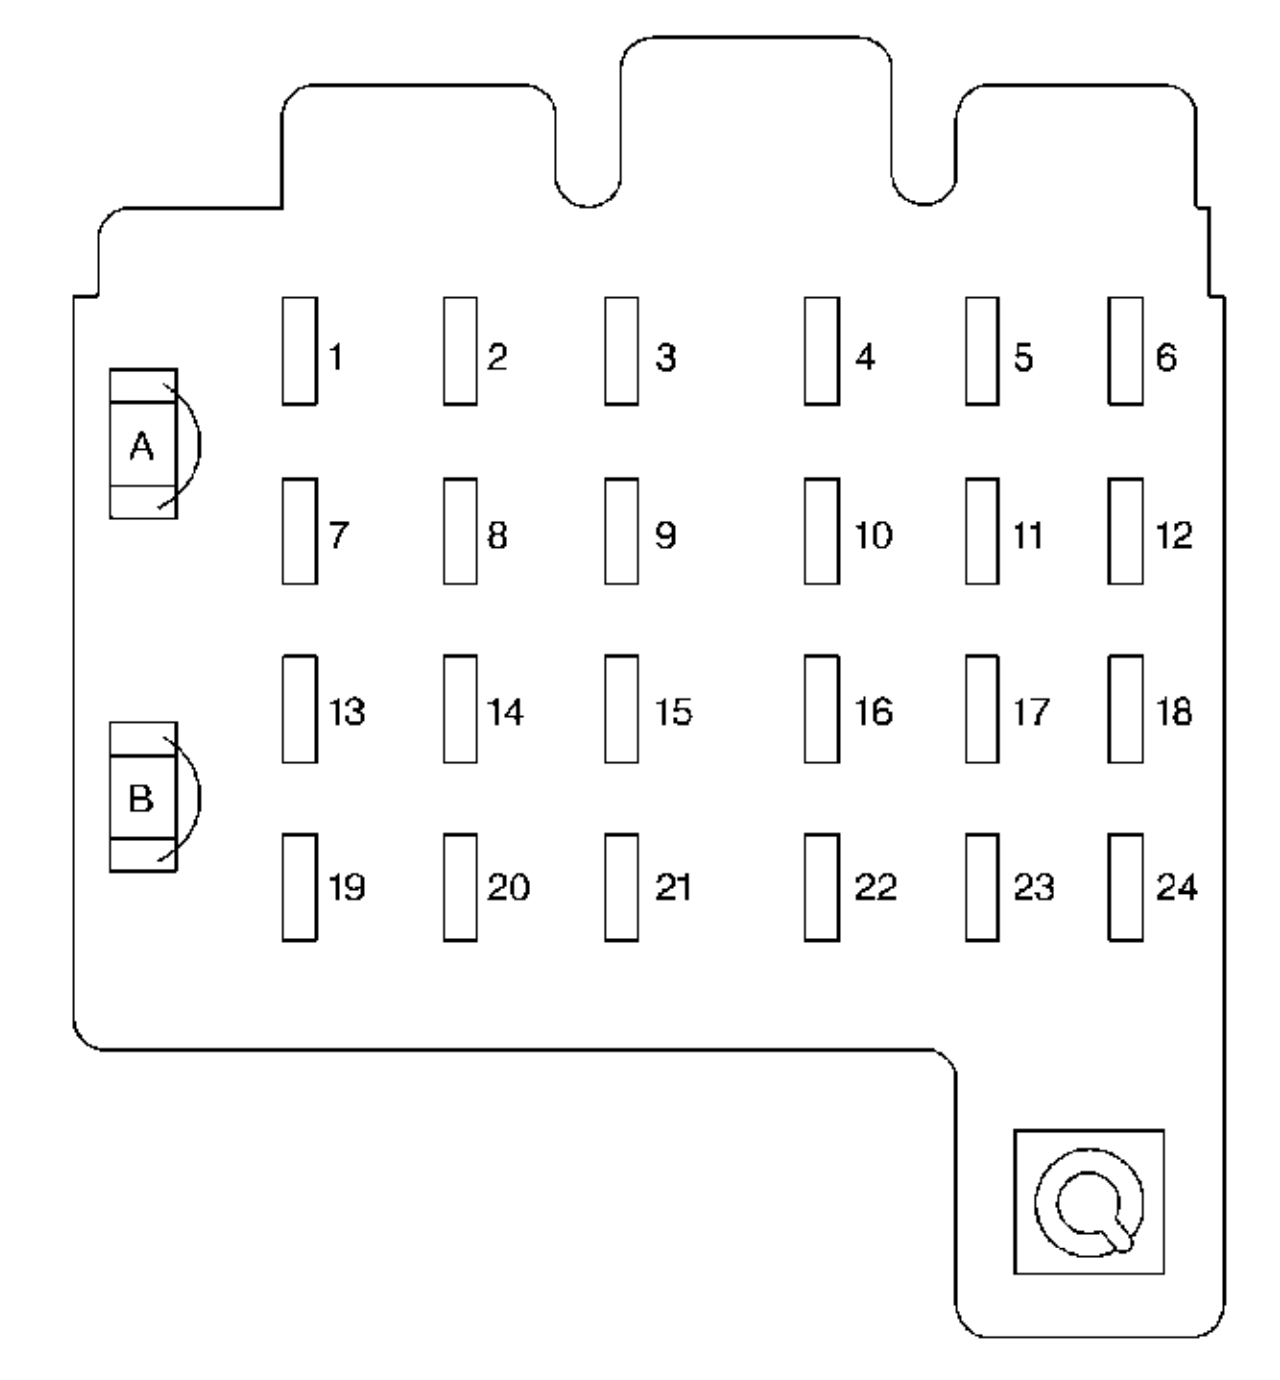 hight resolution of 1999 tahoe fuse box diagram wiring diagram load 1999 tahoe fuse diagram 1999 tahoe fuse diagram